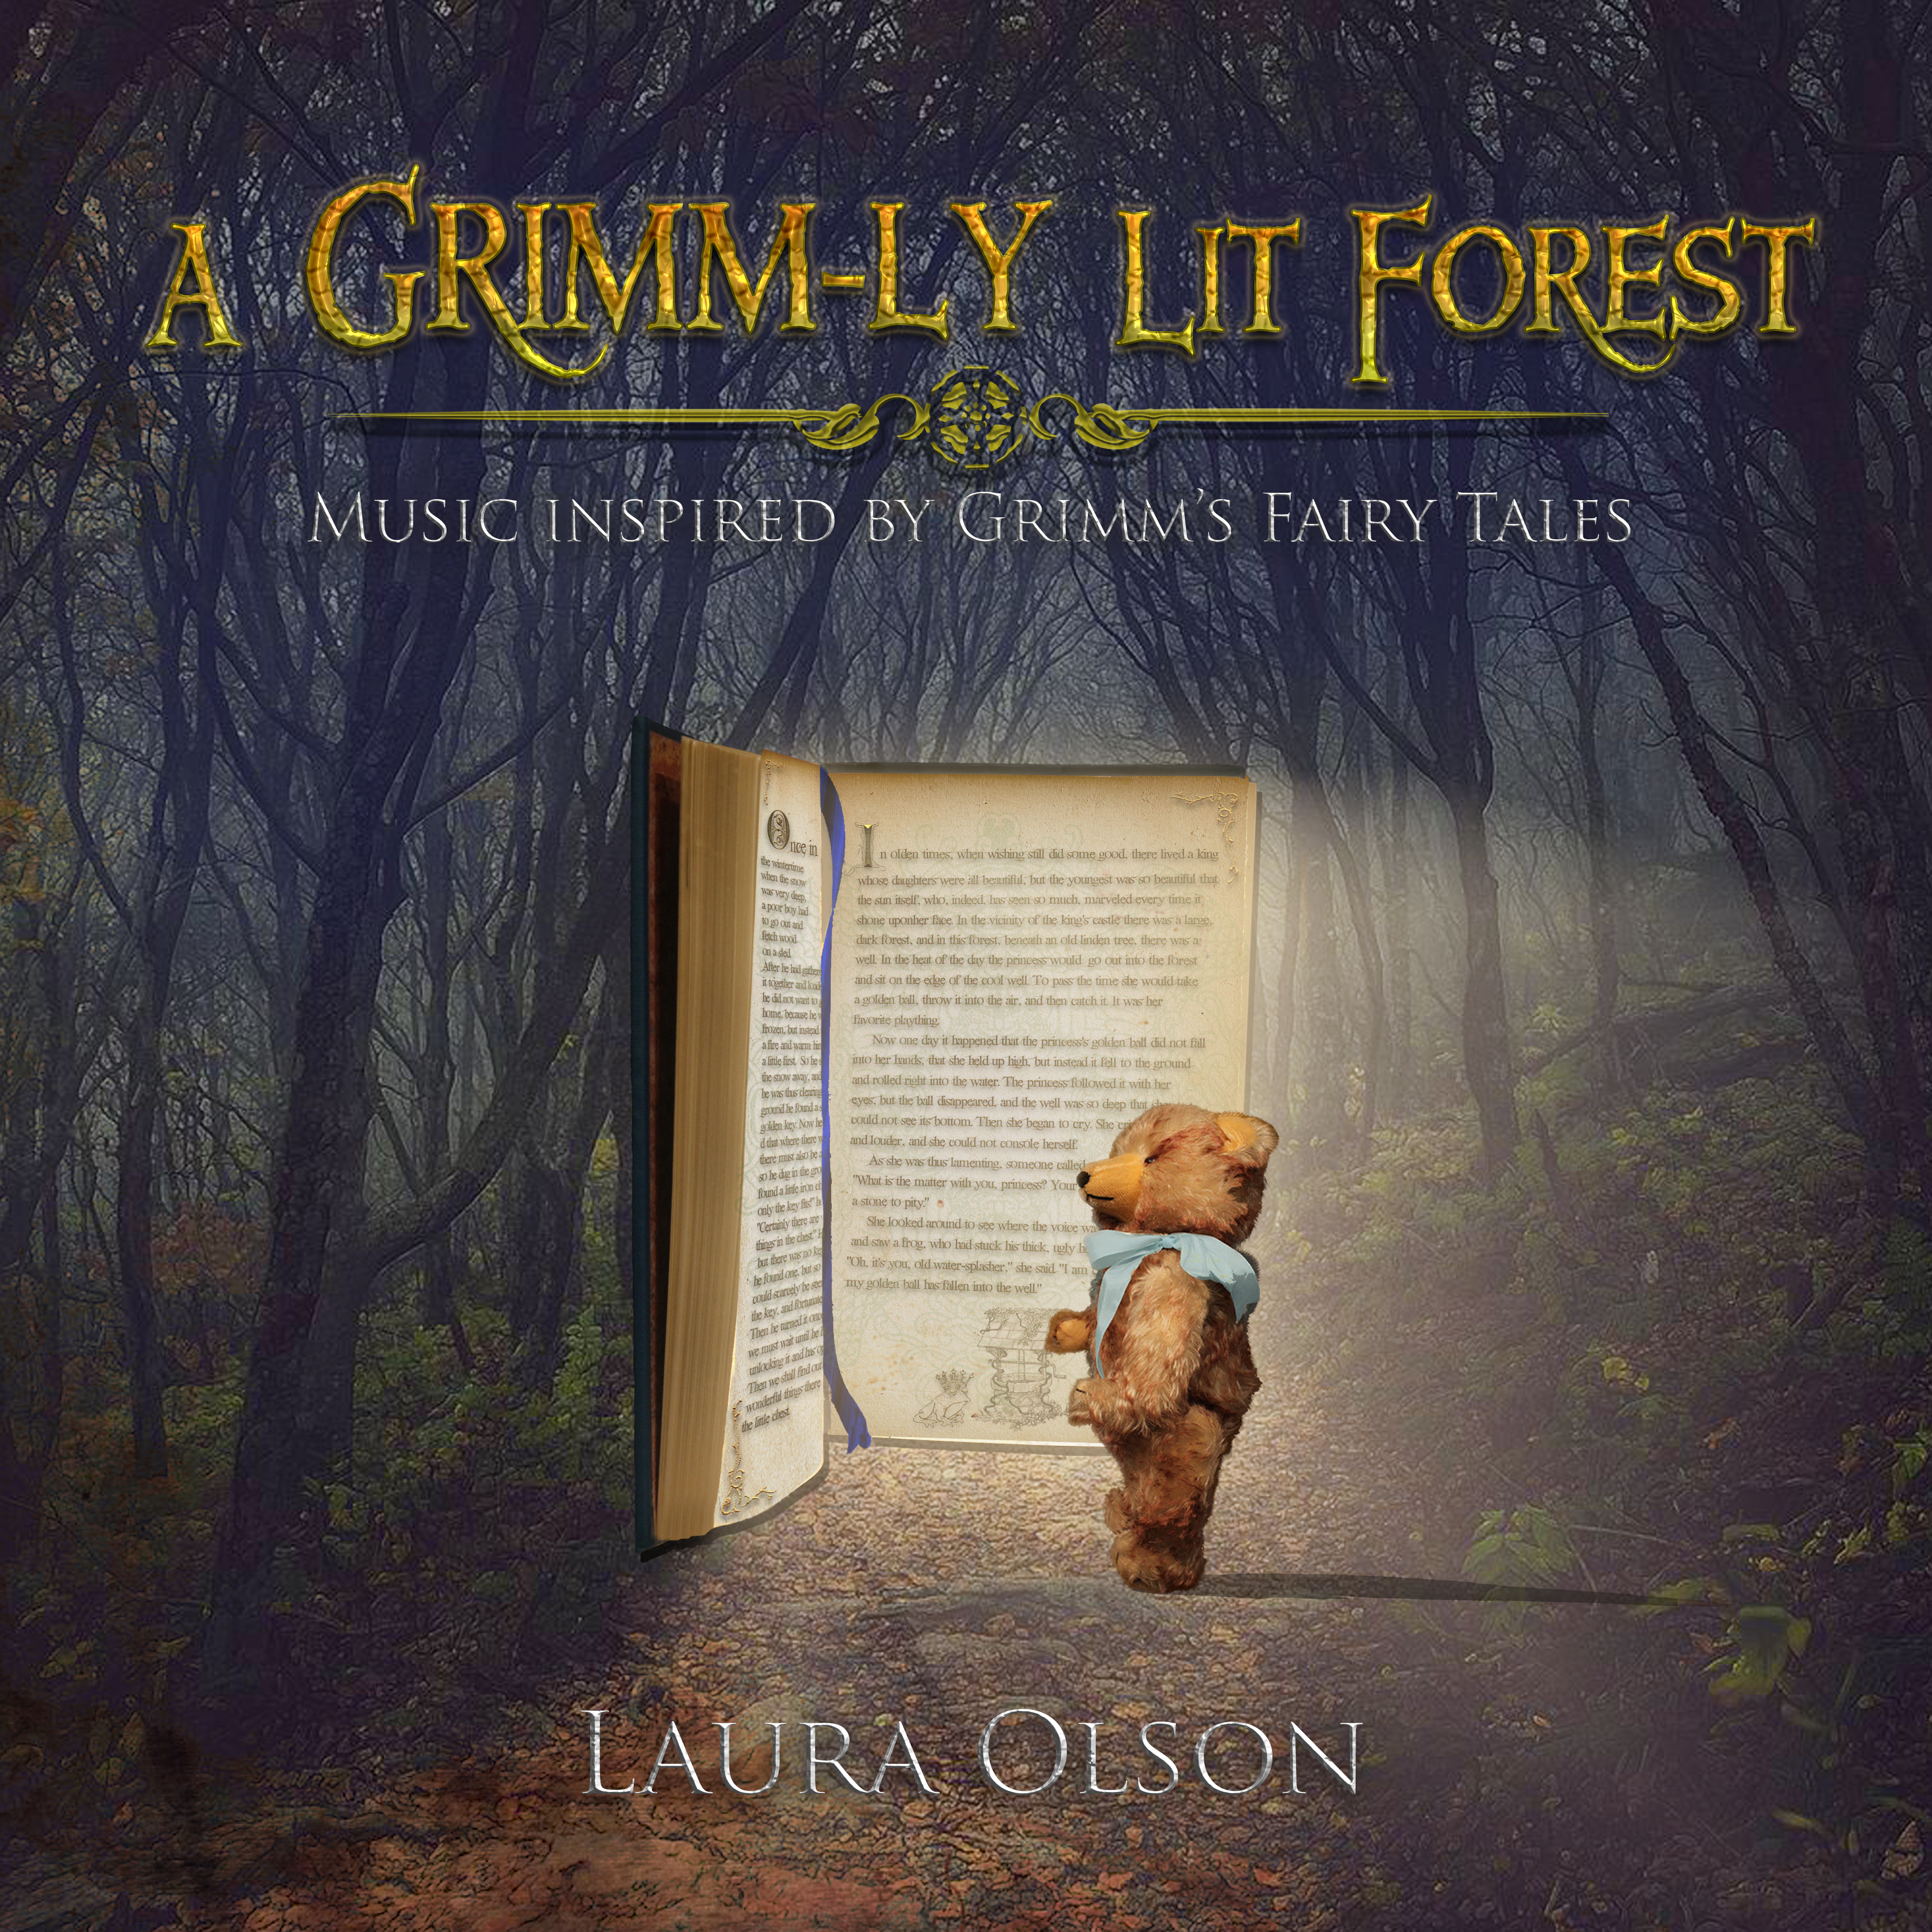 A Grimm-ly Lit Forest